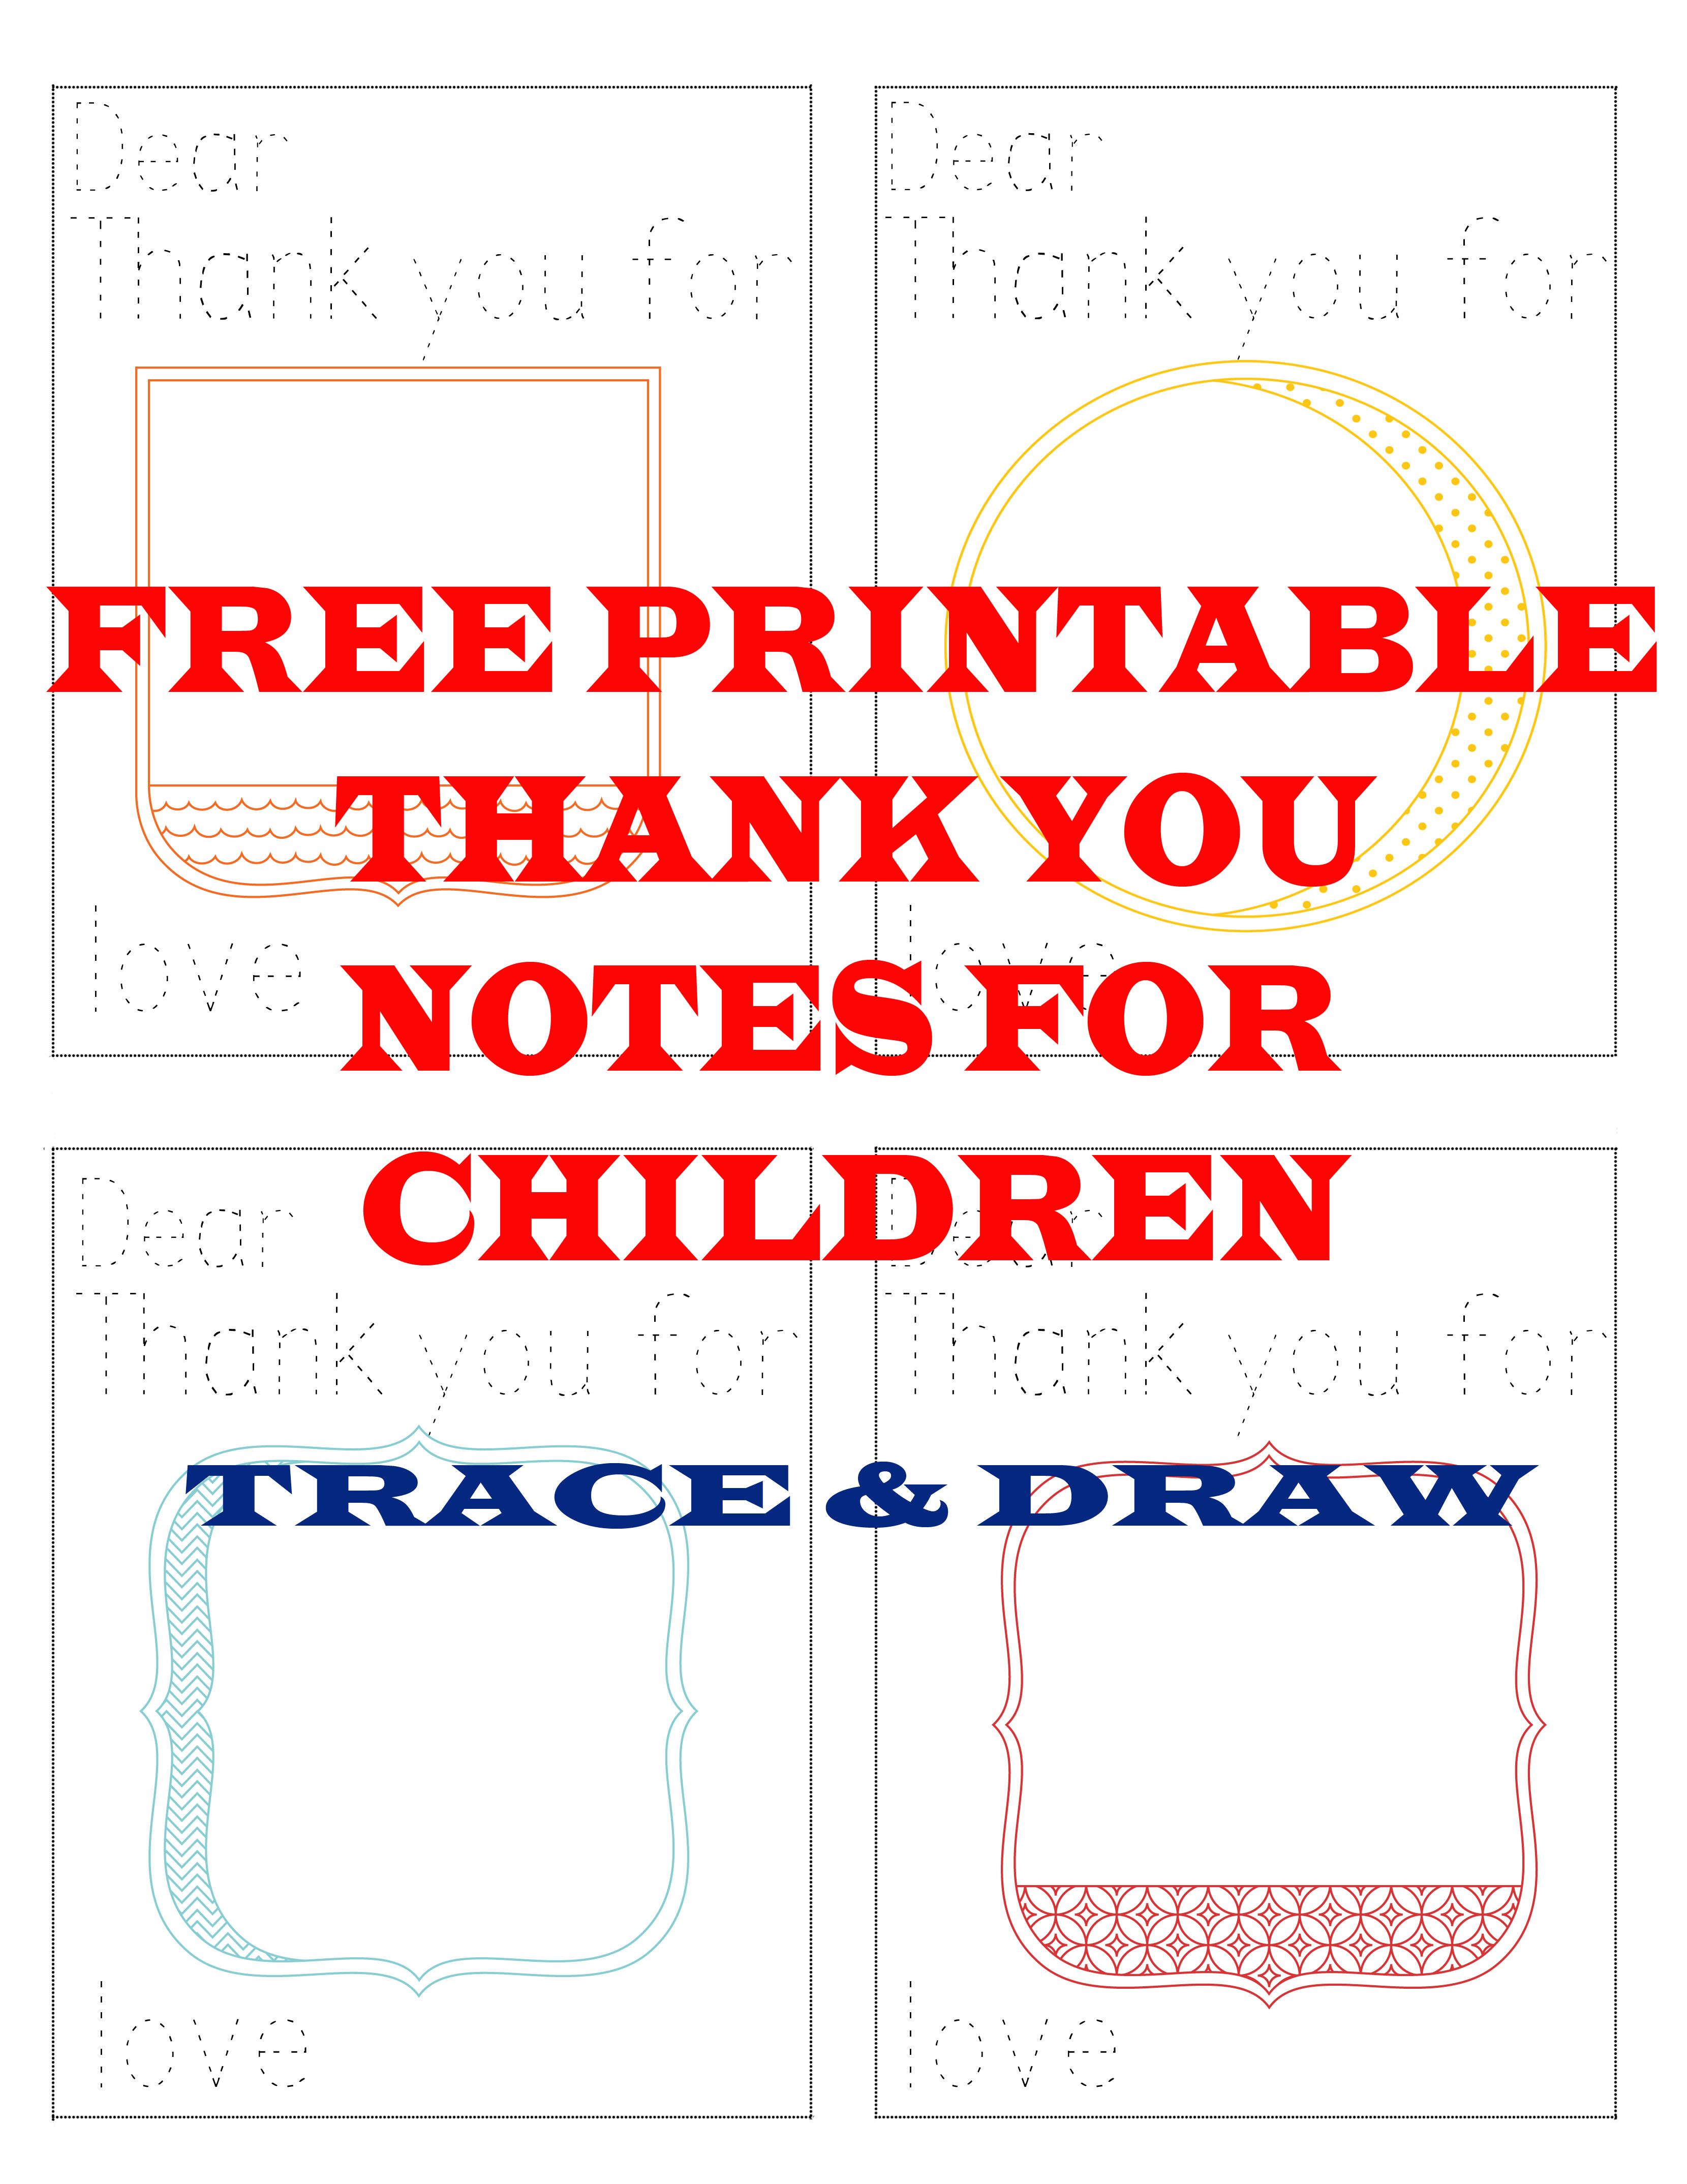 Free printable thank you notes for children jessicalynette com